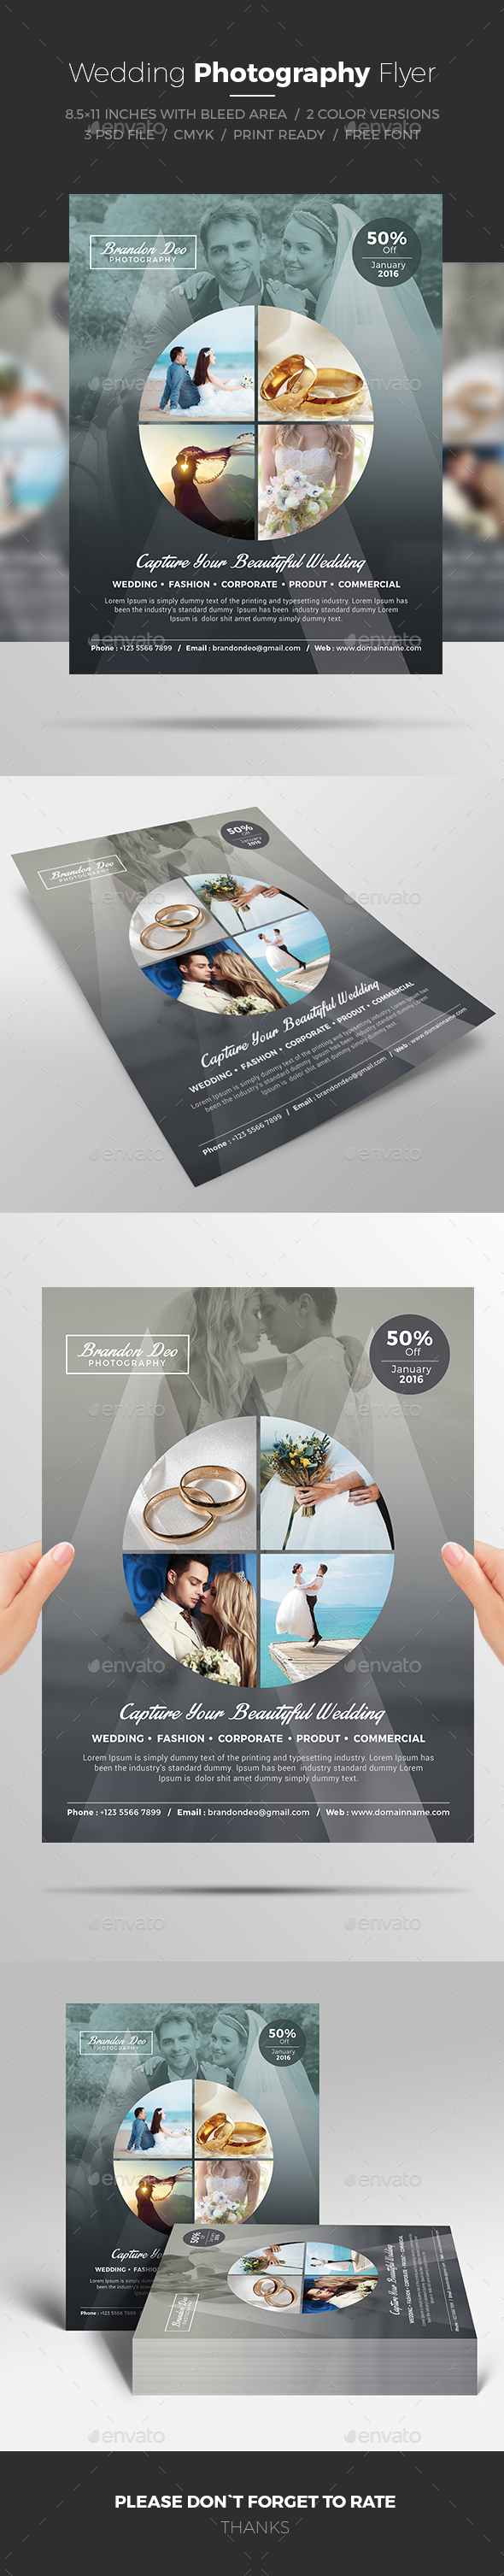 Wedding Photography Flyer - Commerce Flyers